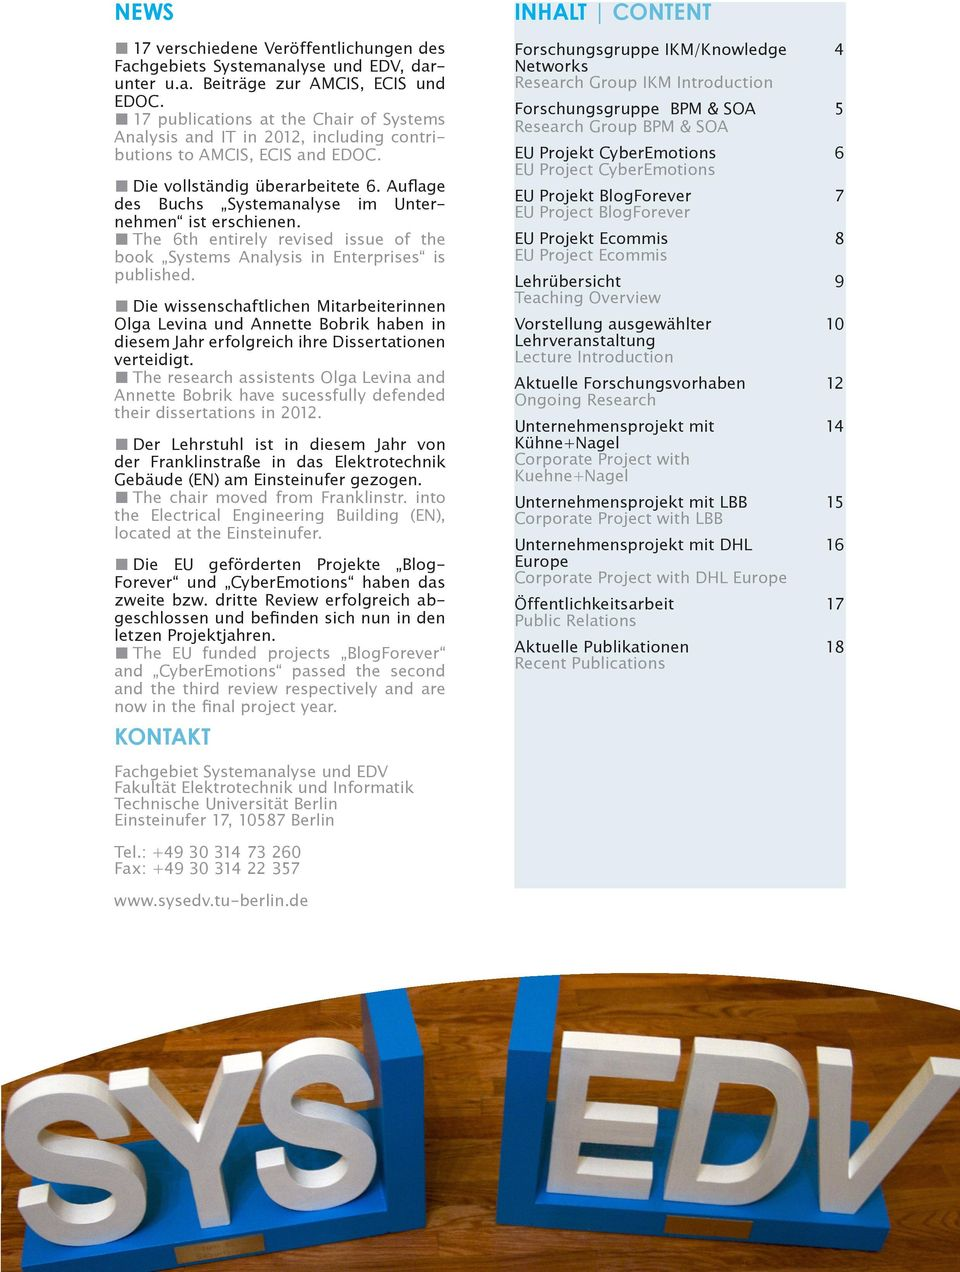 dar unter u.a. Beiträge zur AMCIS, ECIS und EDOC. 17 publications at the Chair of Systems Analysis and IT in 2012, including contri butions to AMCIS, ECIS and EDOC. Die vollständig überarbeitete 6.